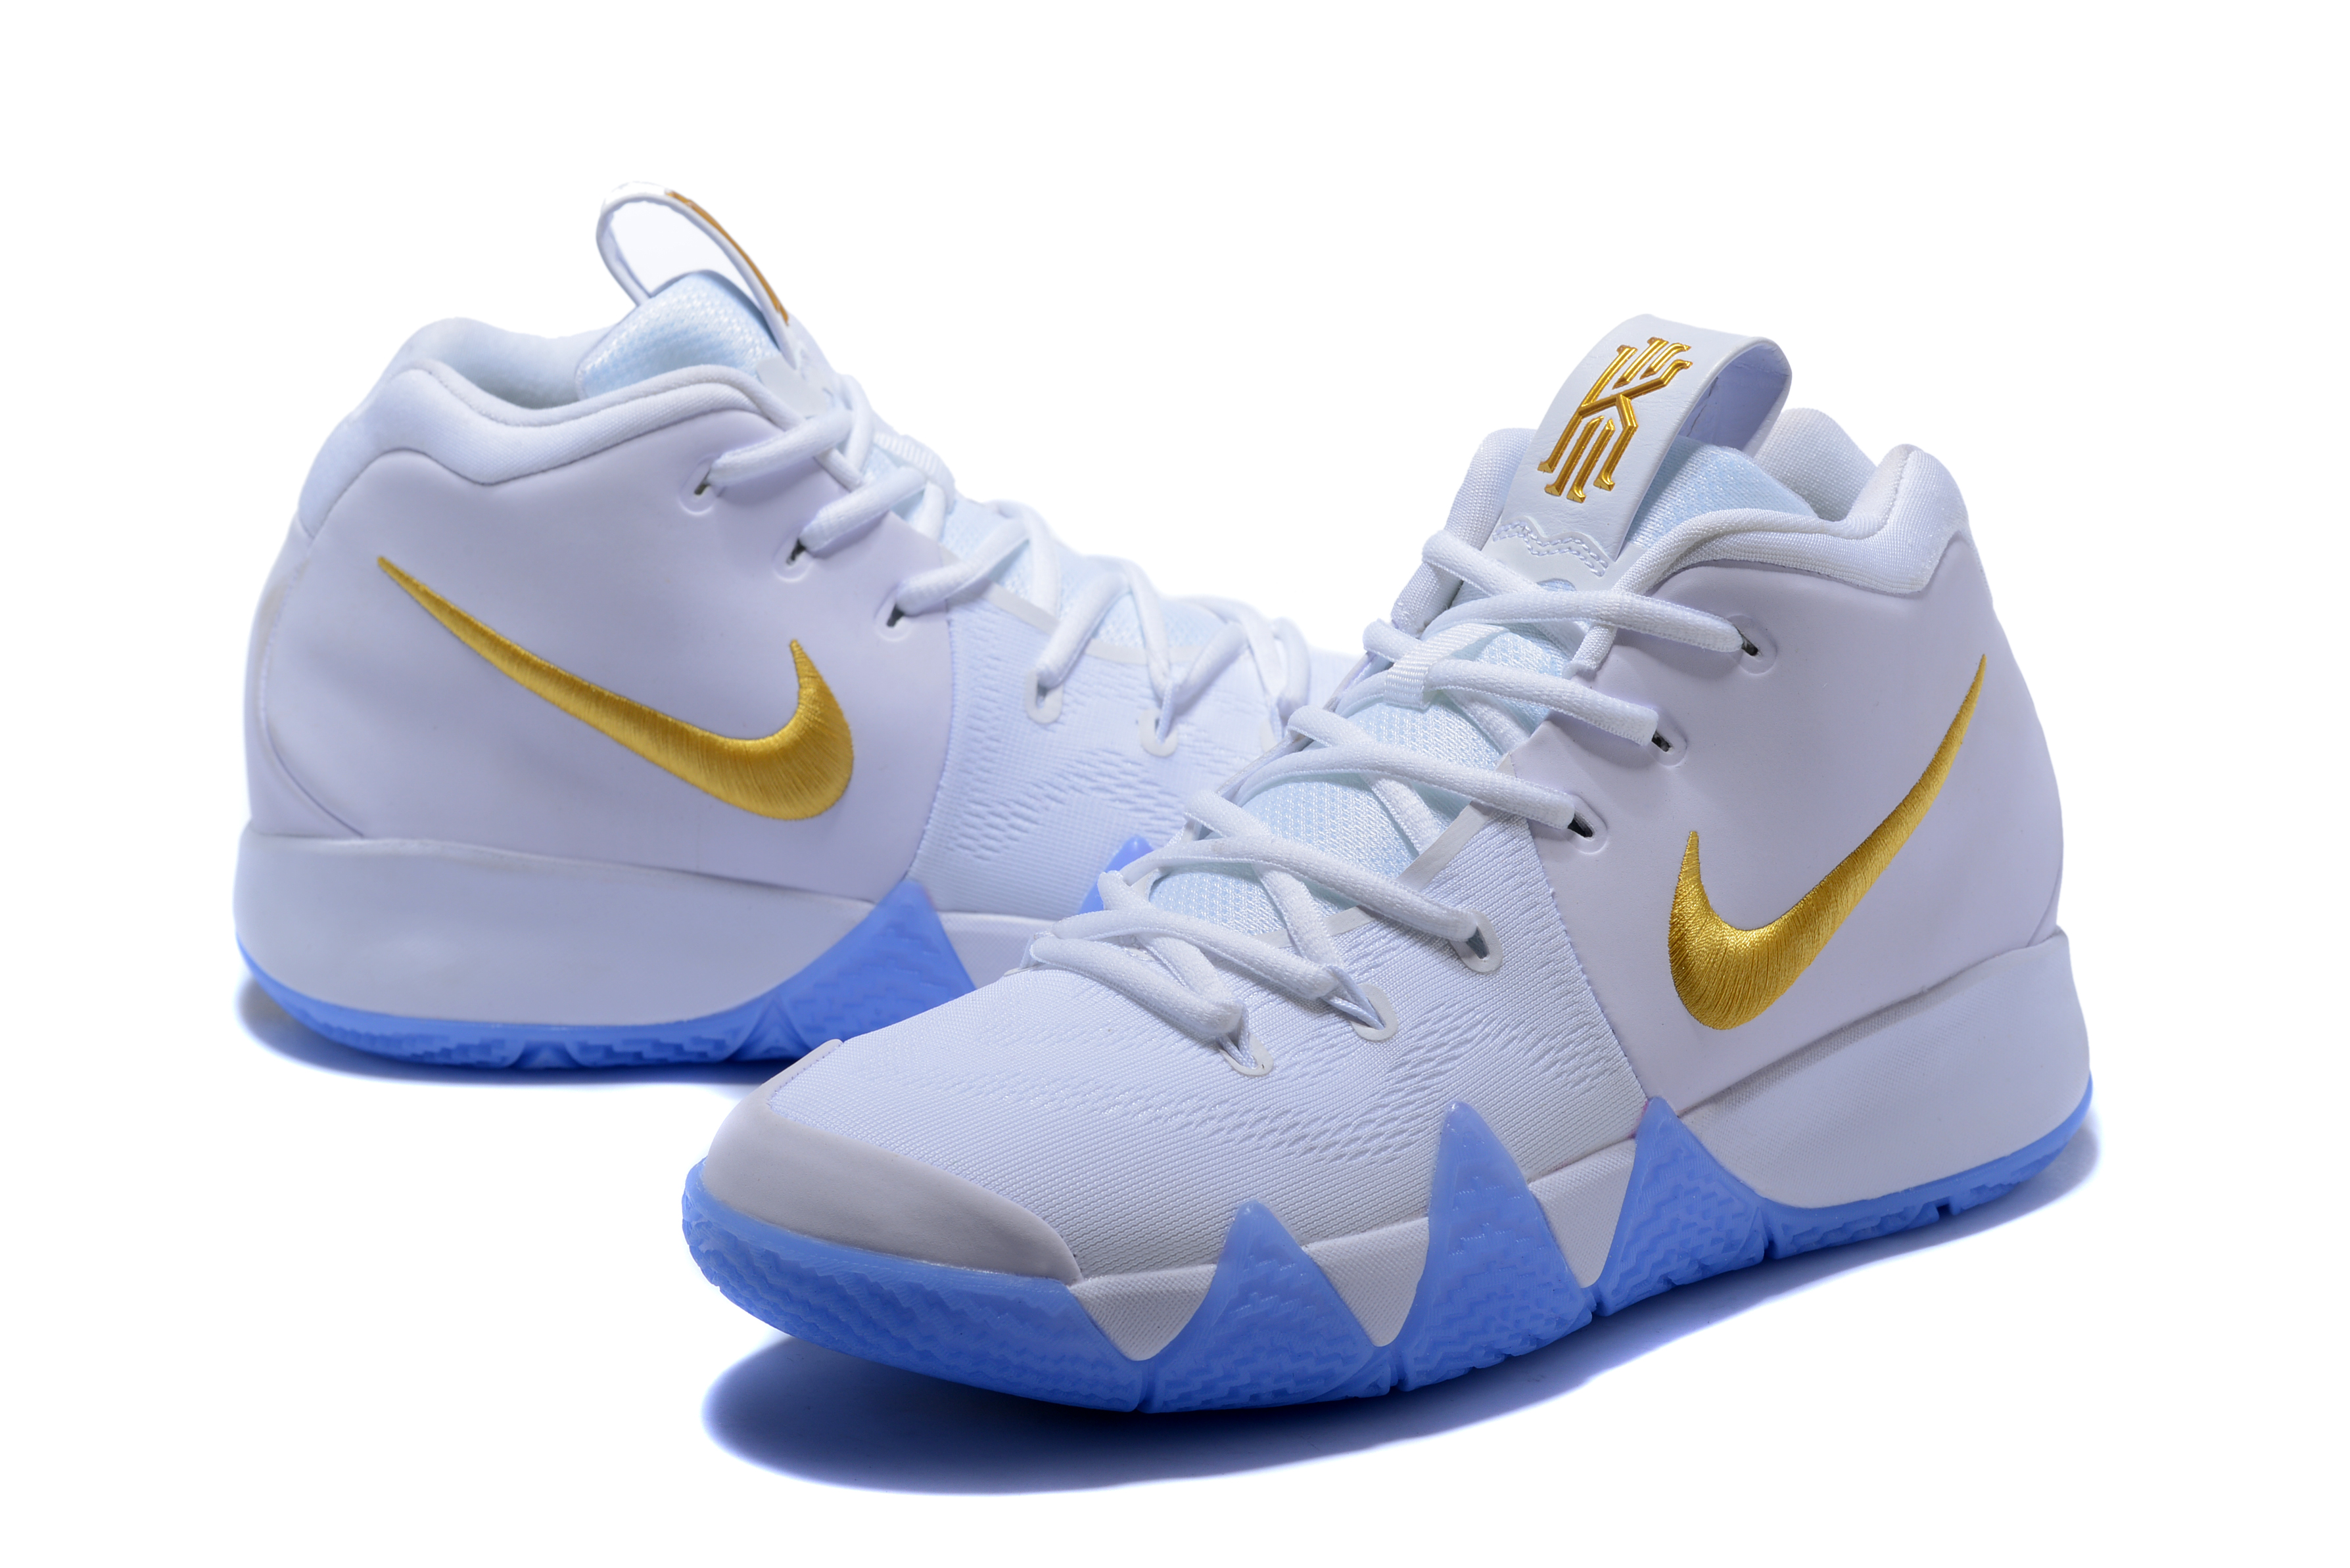 Nike Kyrie Irving 4 WHite Gloden Shoes